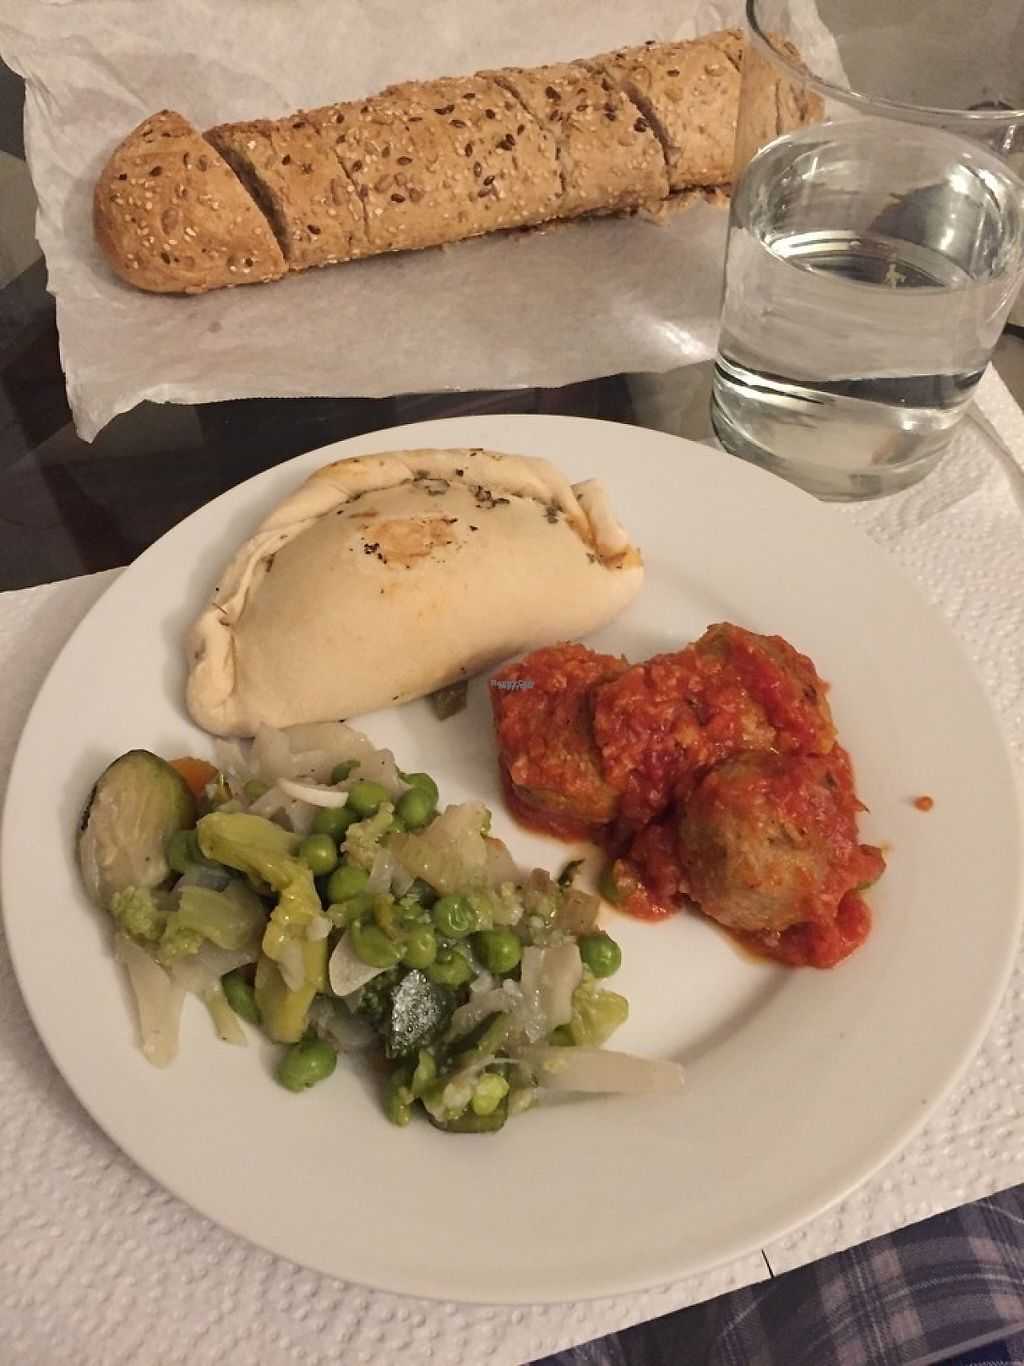 """Photo of Vegetart Cuina Vegana  by <a href=""""/members/profile/Serenella"""">Serenella</a> <br/>empanadas, soy meatballs in gravy and vegetables <br/> April 18, 2017  - <a href='/contact/abuse/image/37959/249594'>Report</a>"""